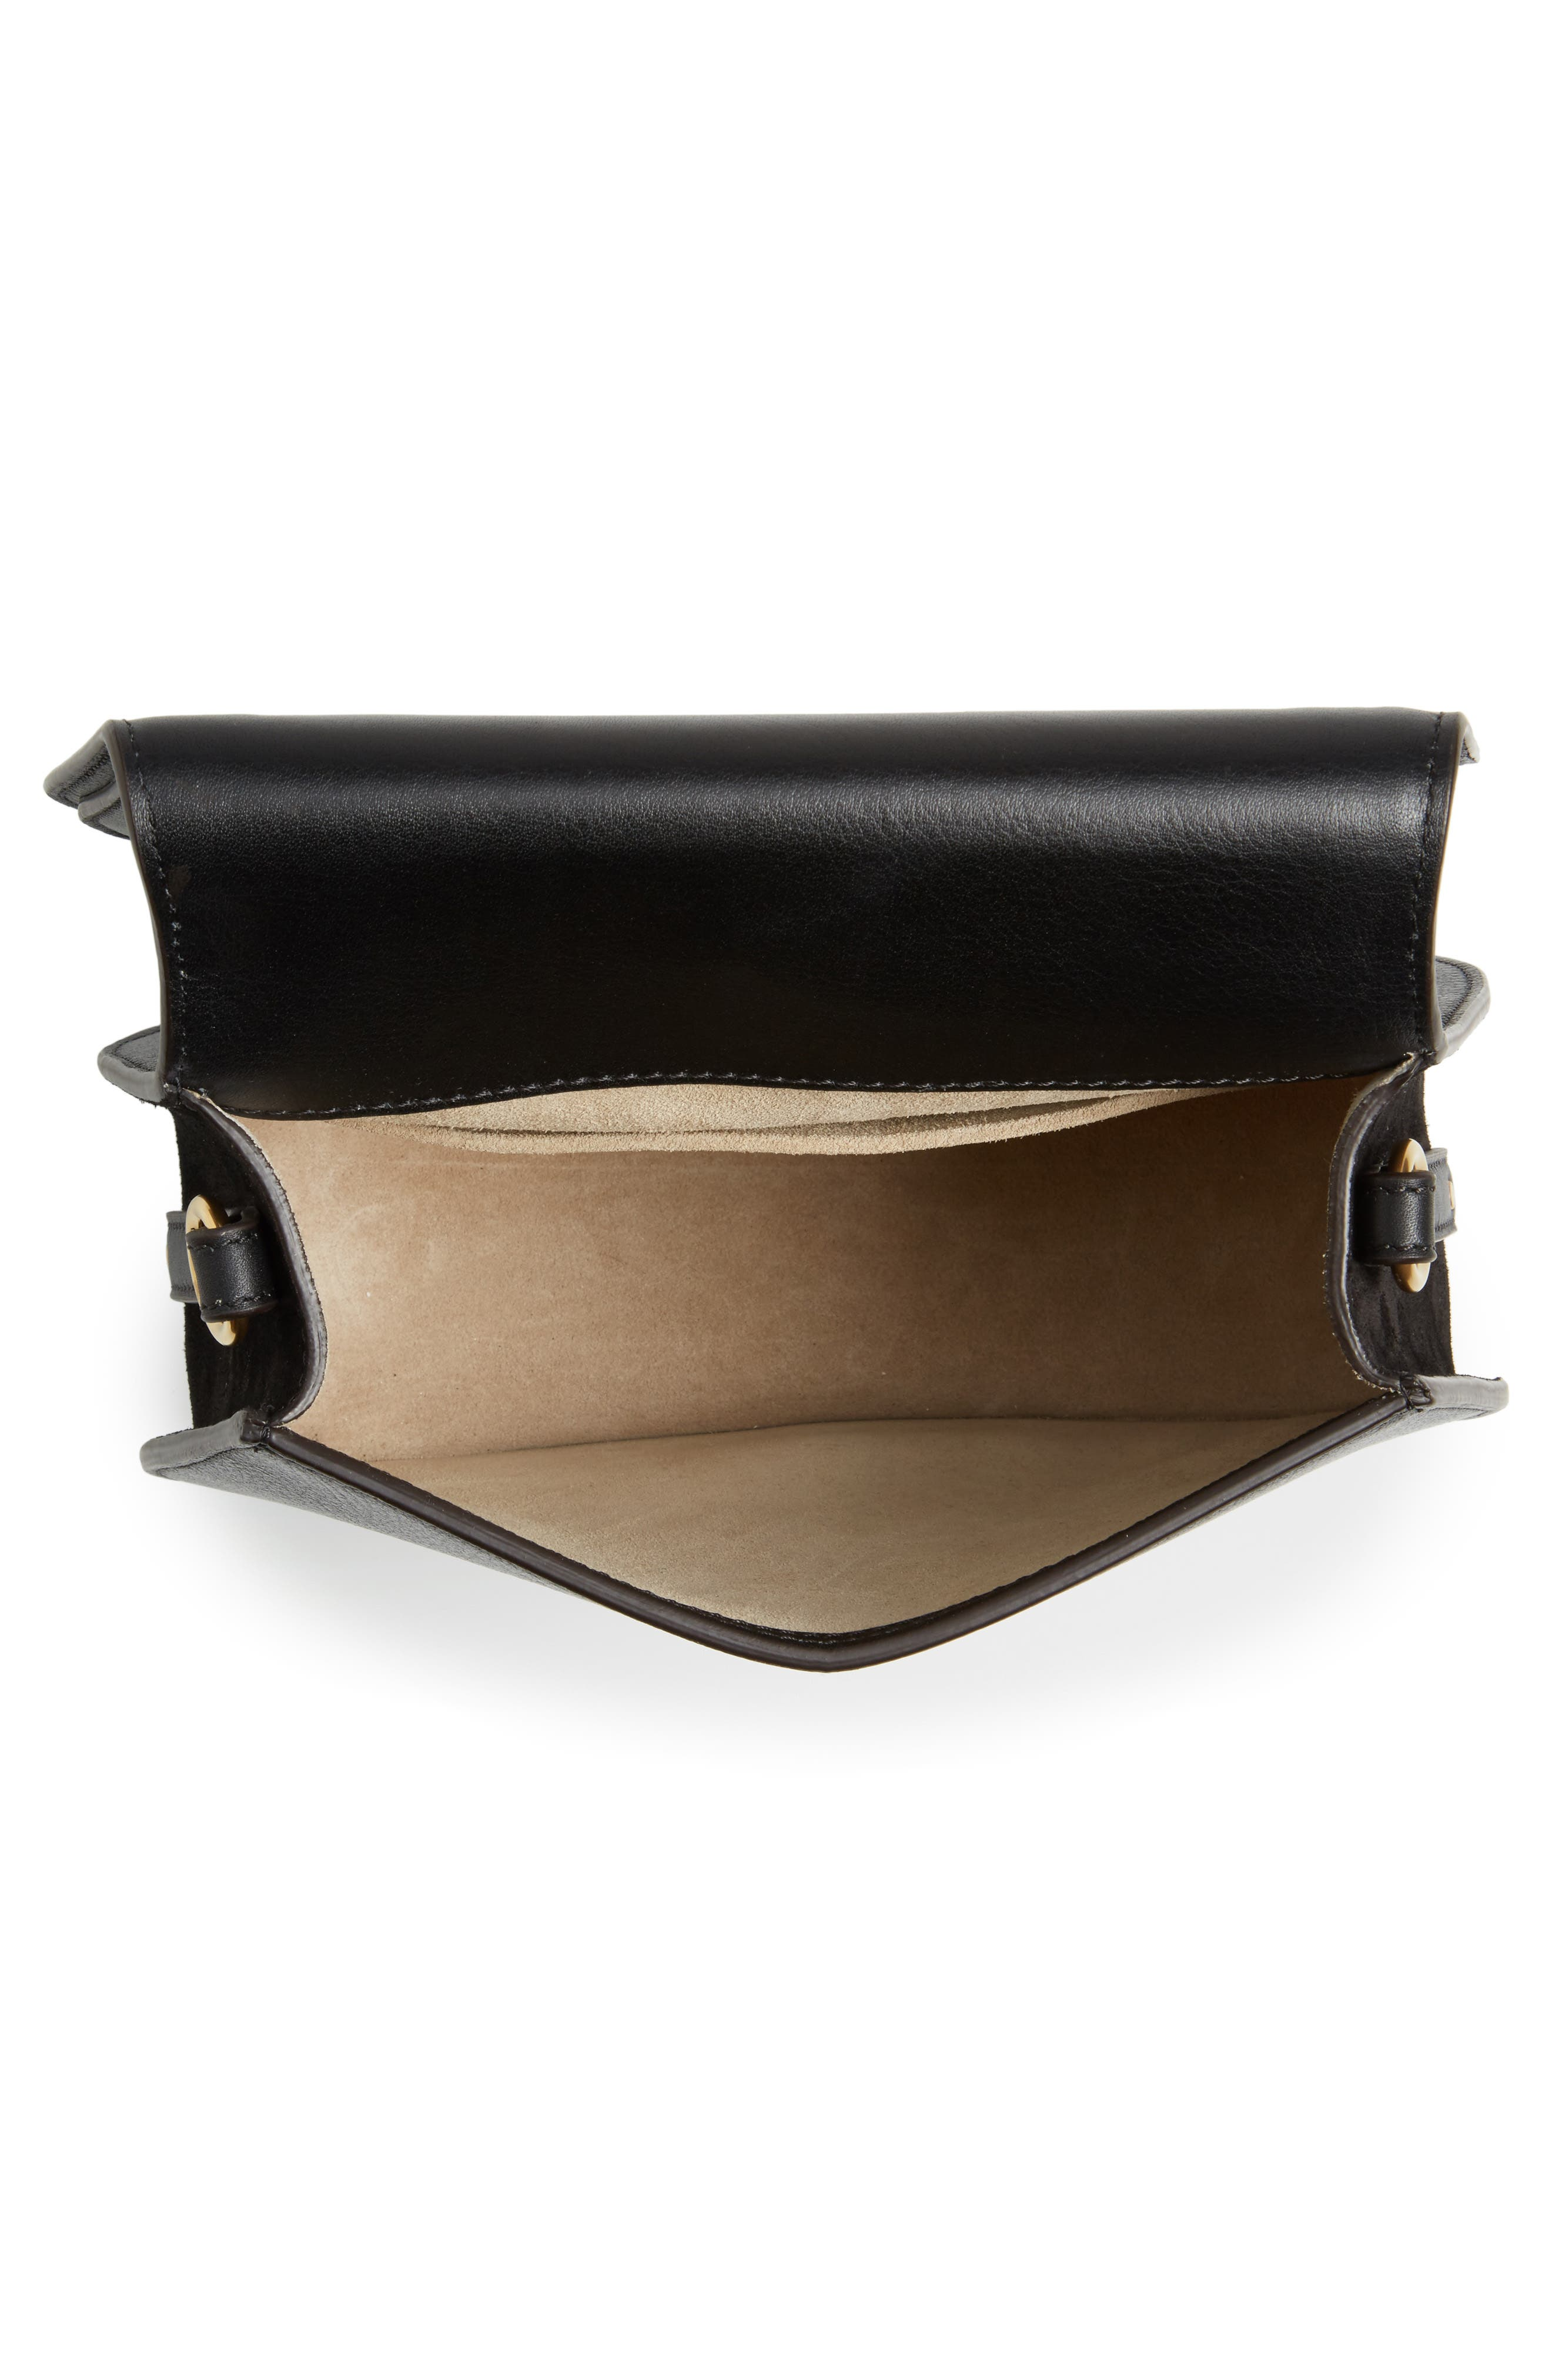 Medium Nile Leather Bracelet Saddle Bag,                             Alternate thumbnail 5, color,                             001NR001 BLACK